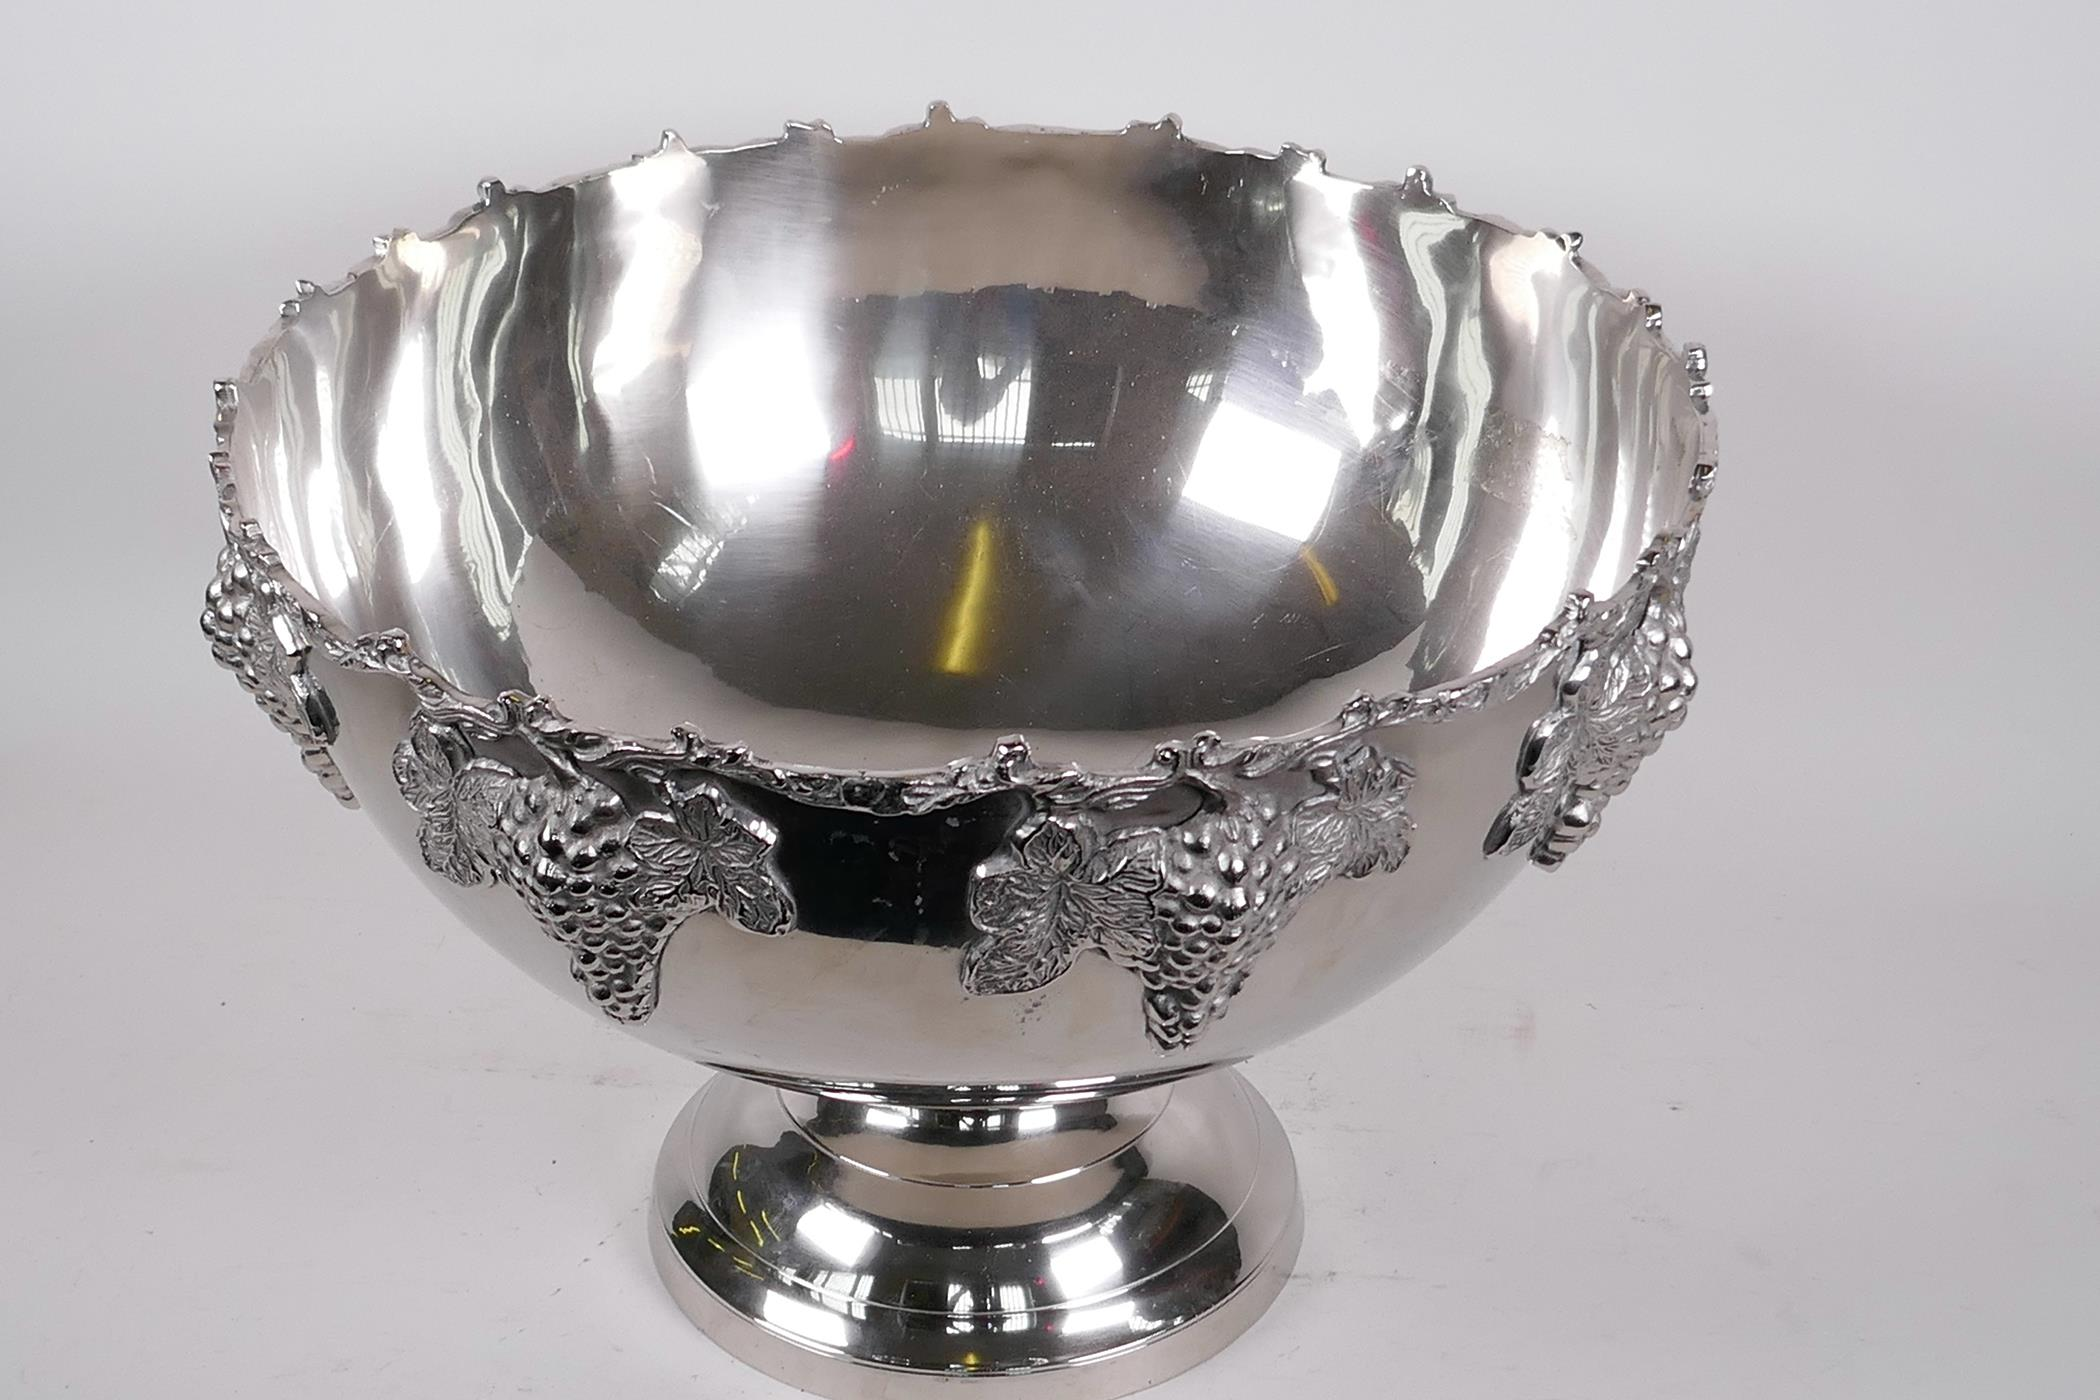 """A large plated pedestal punch bowl decorated with bunches of grapes, 15"""" diameter, 10"""" high - Image 3 of 3"""